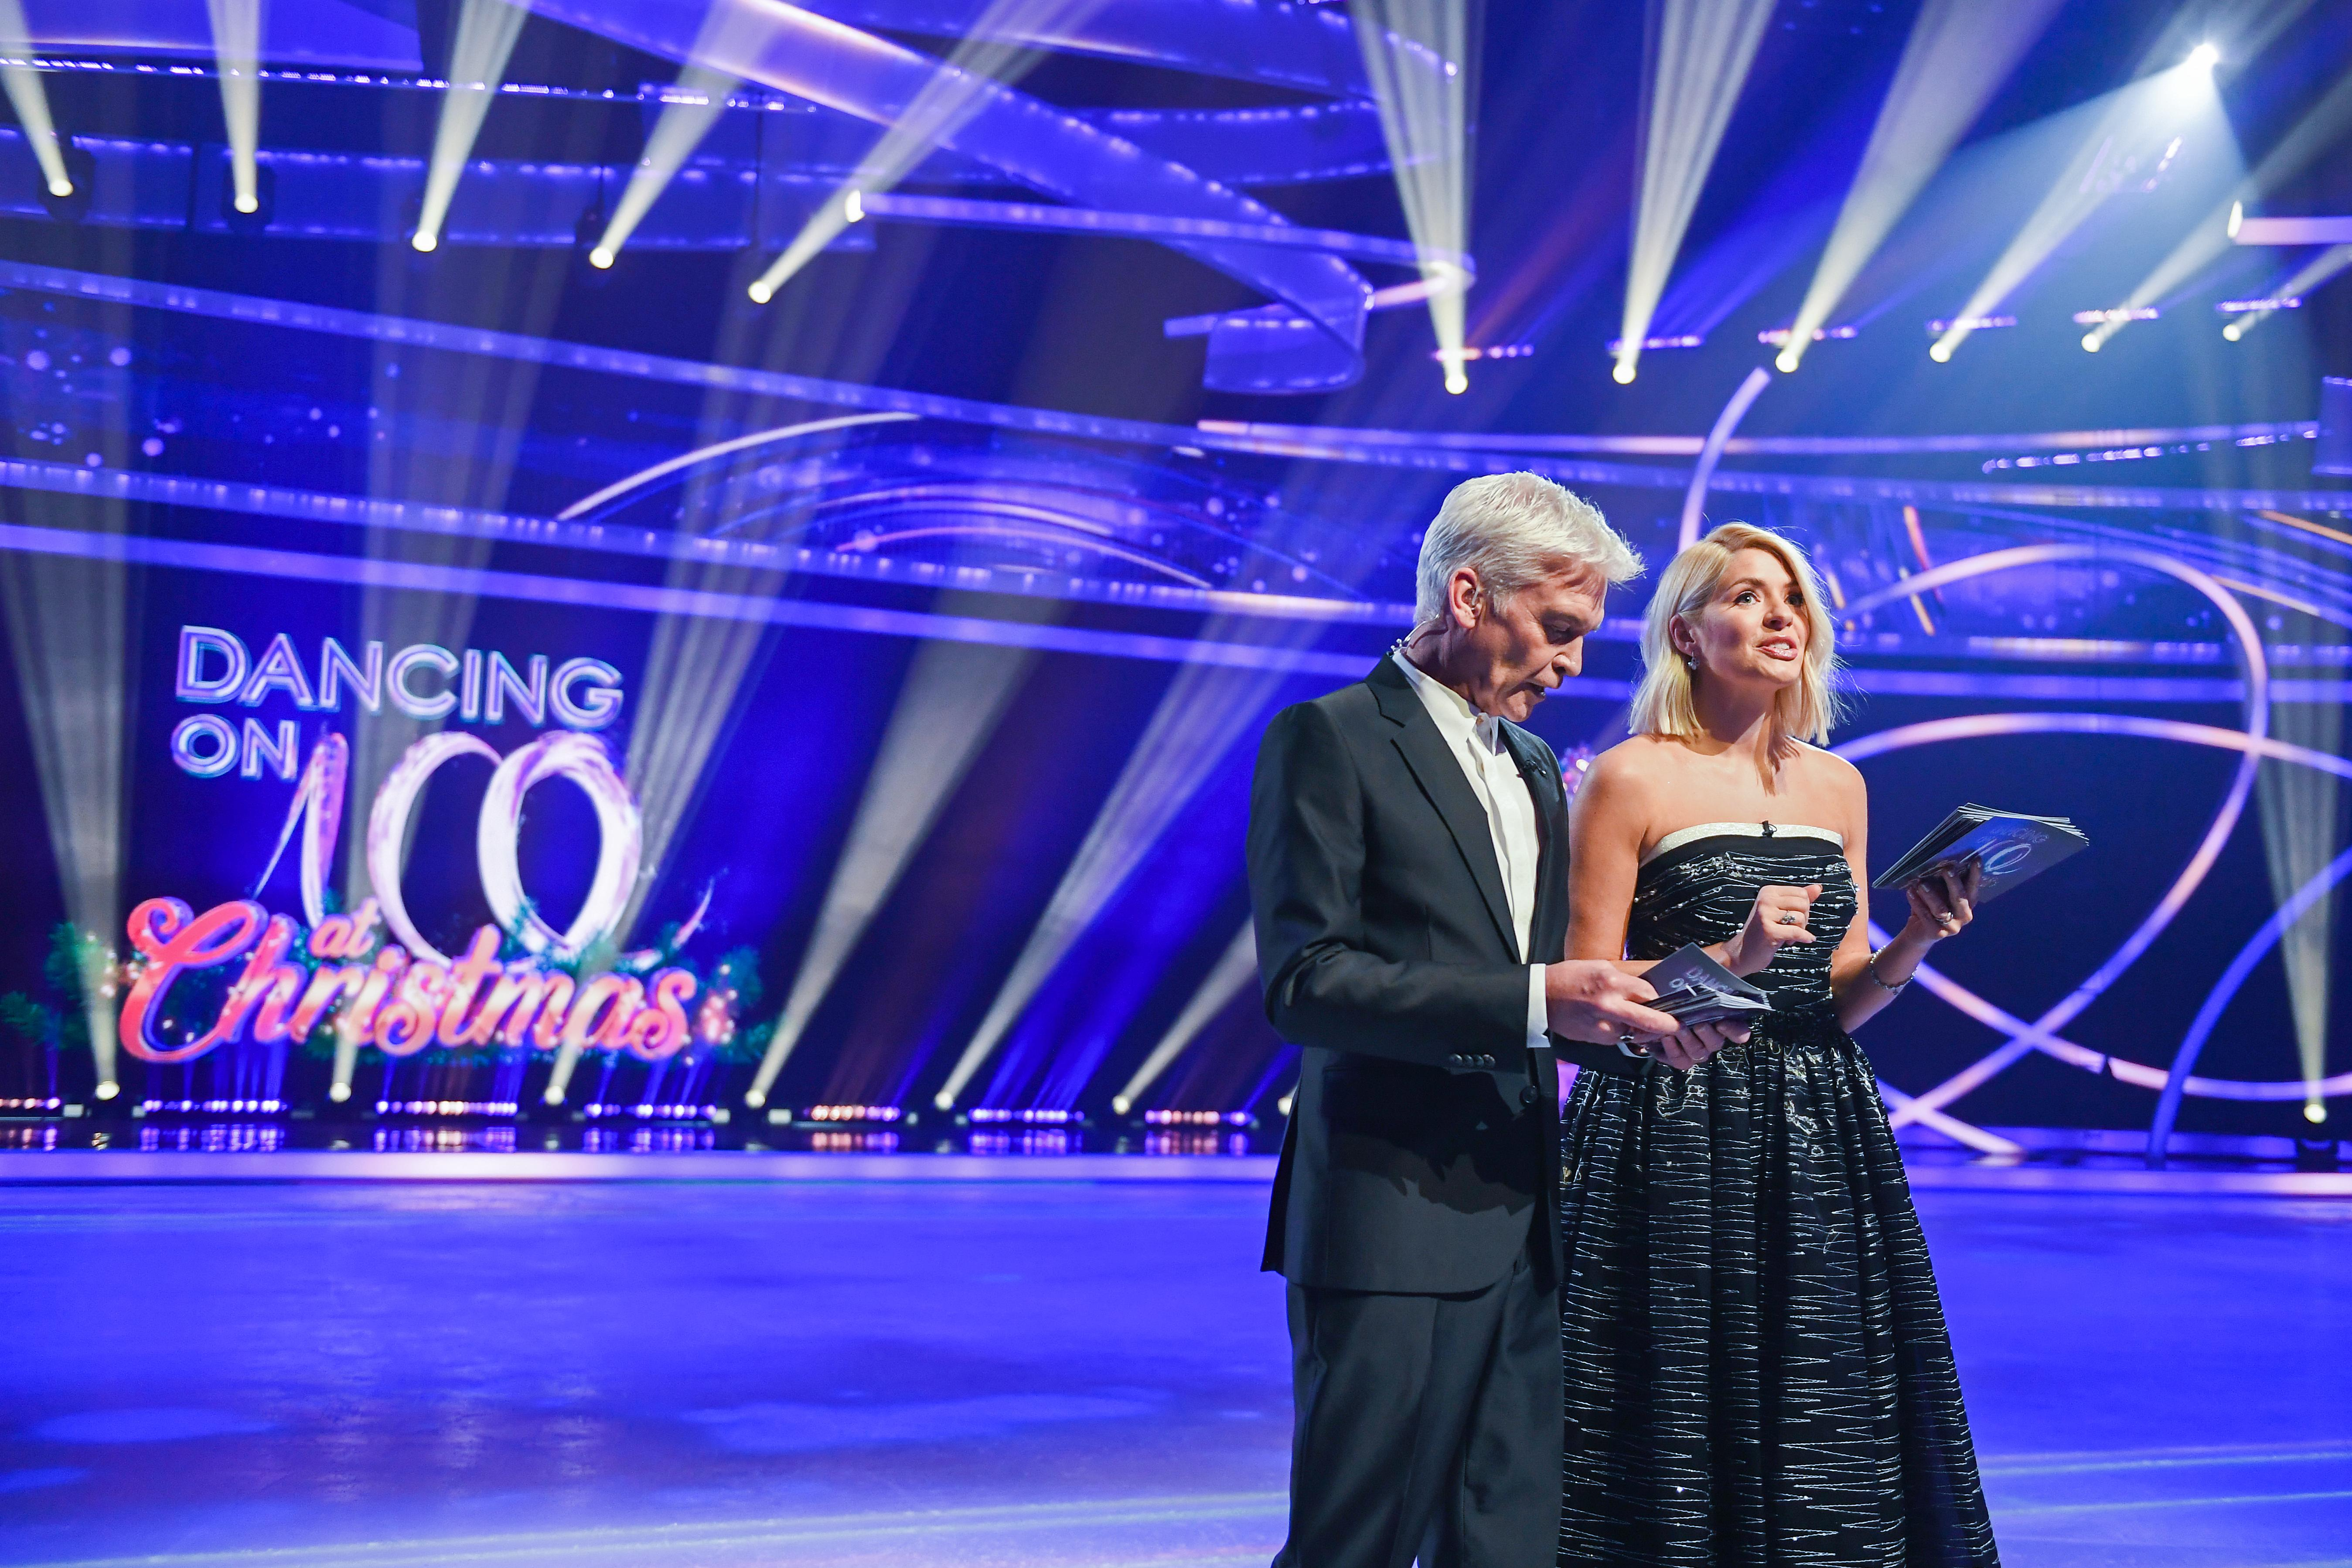 'Dancing On Ice' has measures in place as coronavirus continues to spread